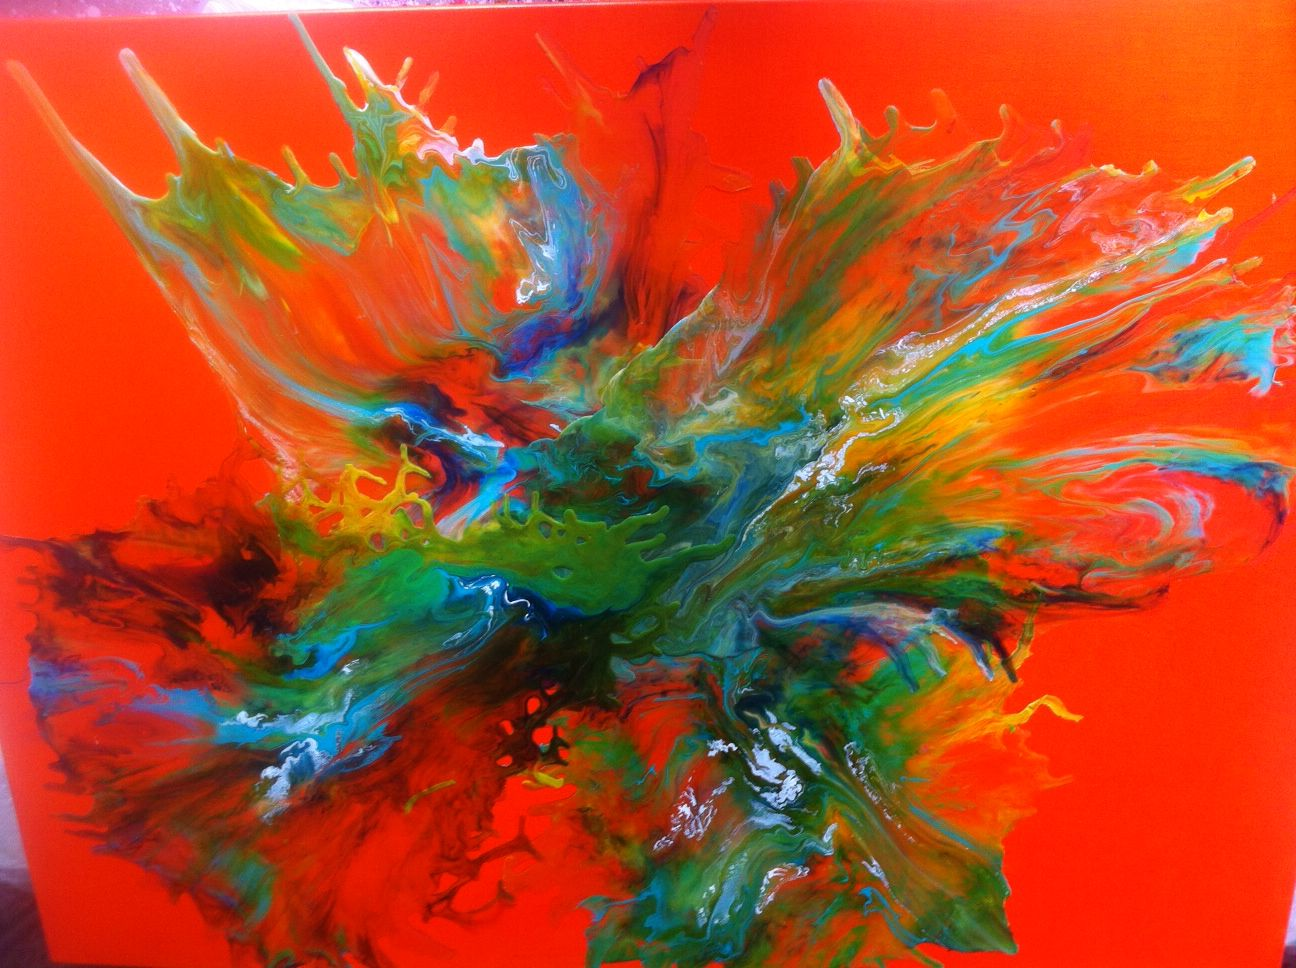 Beautiful flow of paint in vibrant colors